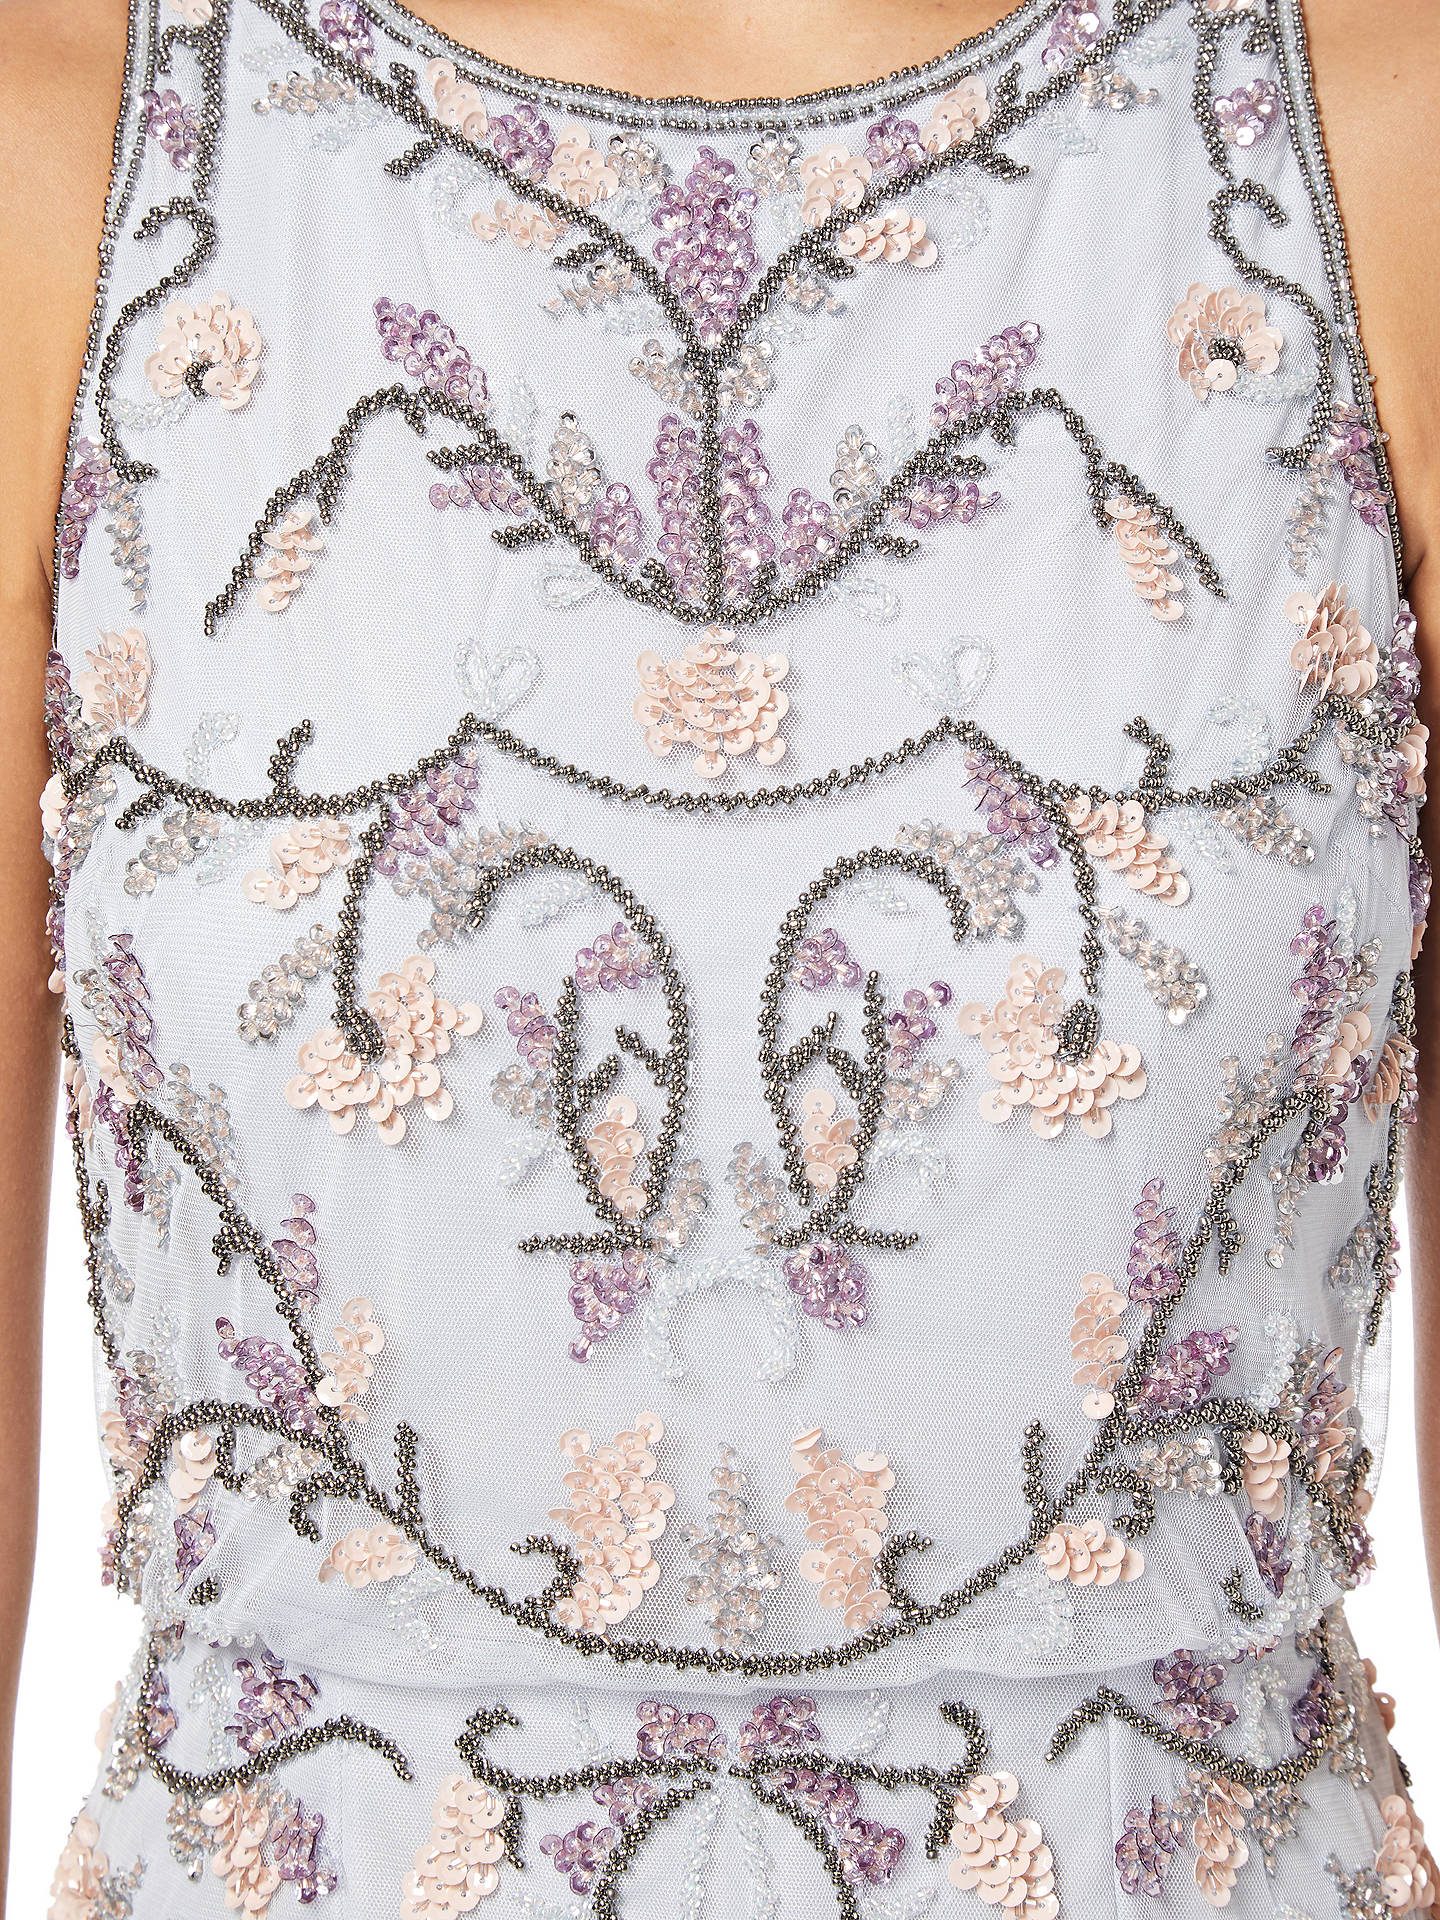 Buy Adrianna Papell Halter Floral Beaded Cocktail Dress, Serenity, 8 Online at johnlewis.com